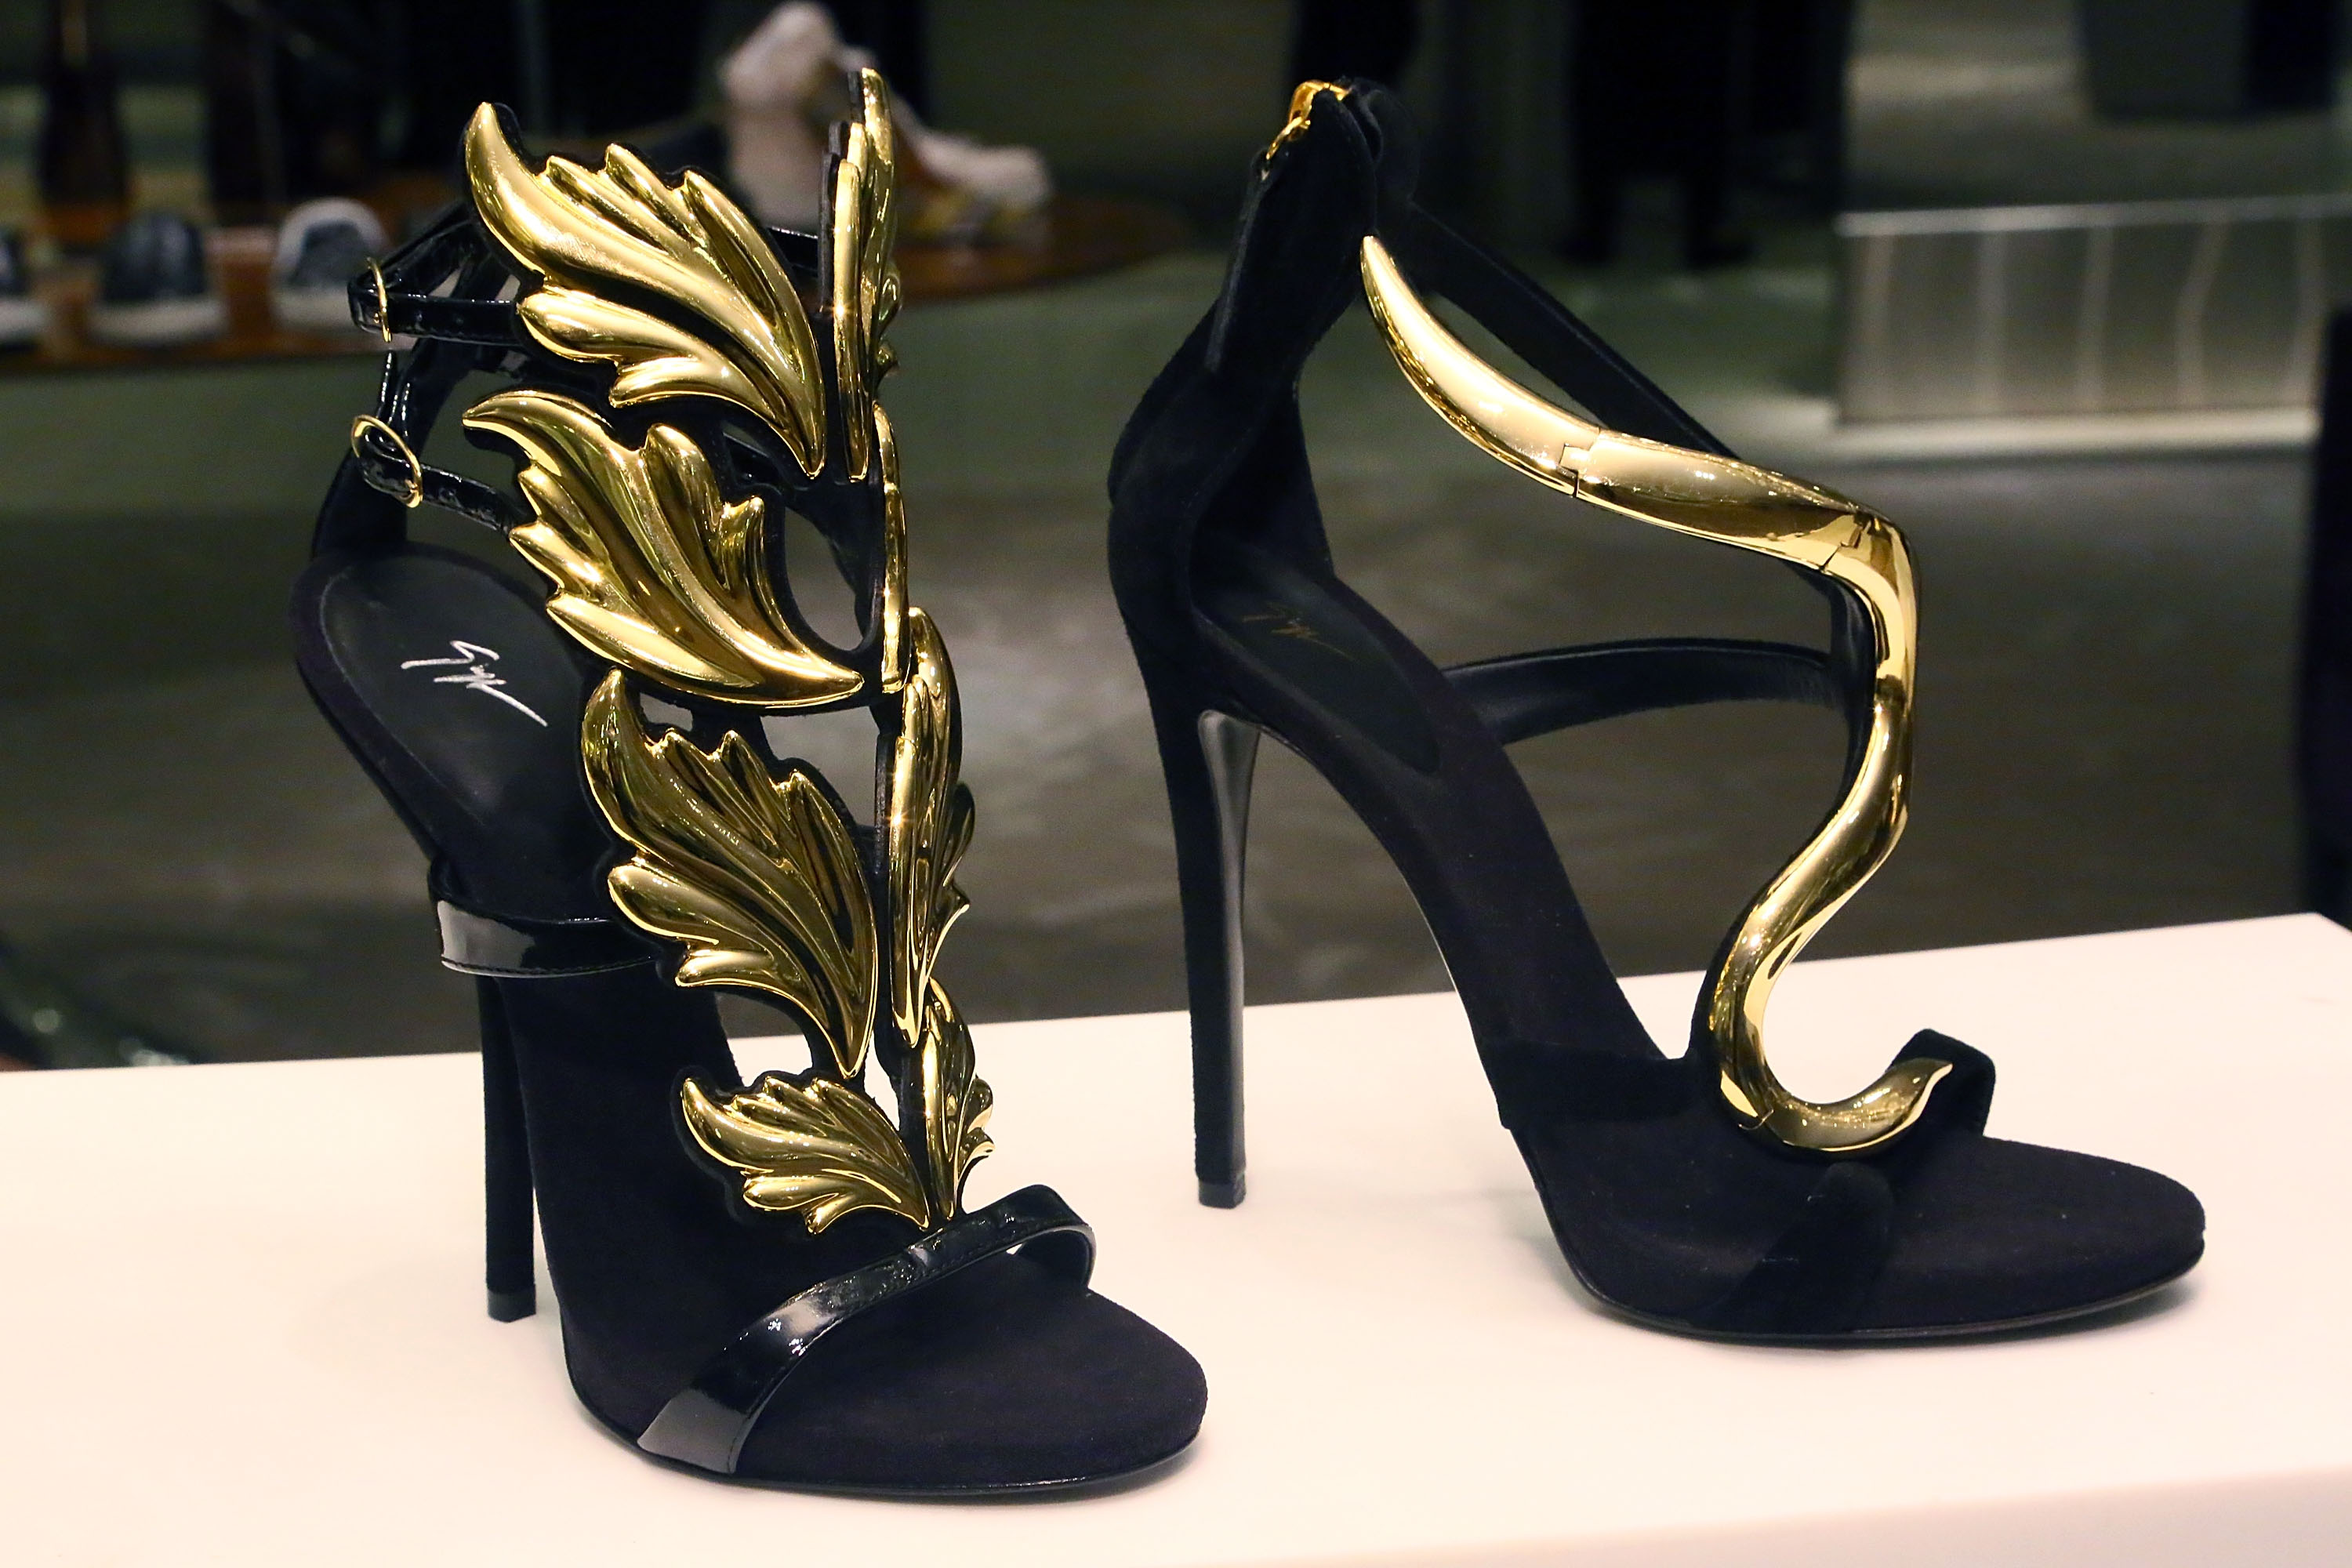 Giuseppe Zanotti Heels Are Displayed During Marie Claire S Shoes First Ping Event At Saks Fifth Avenue